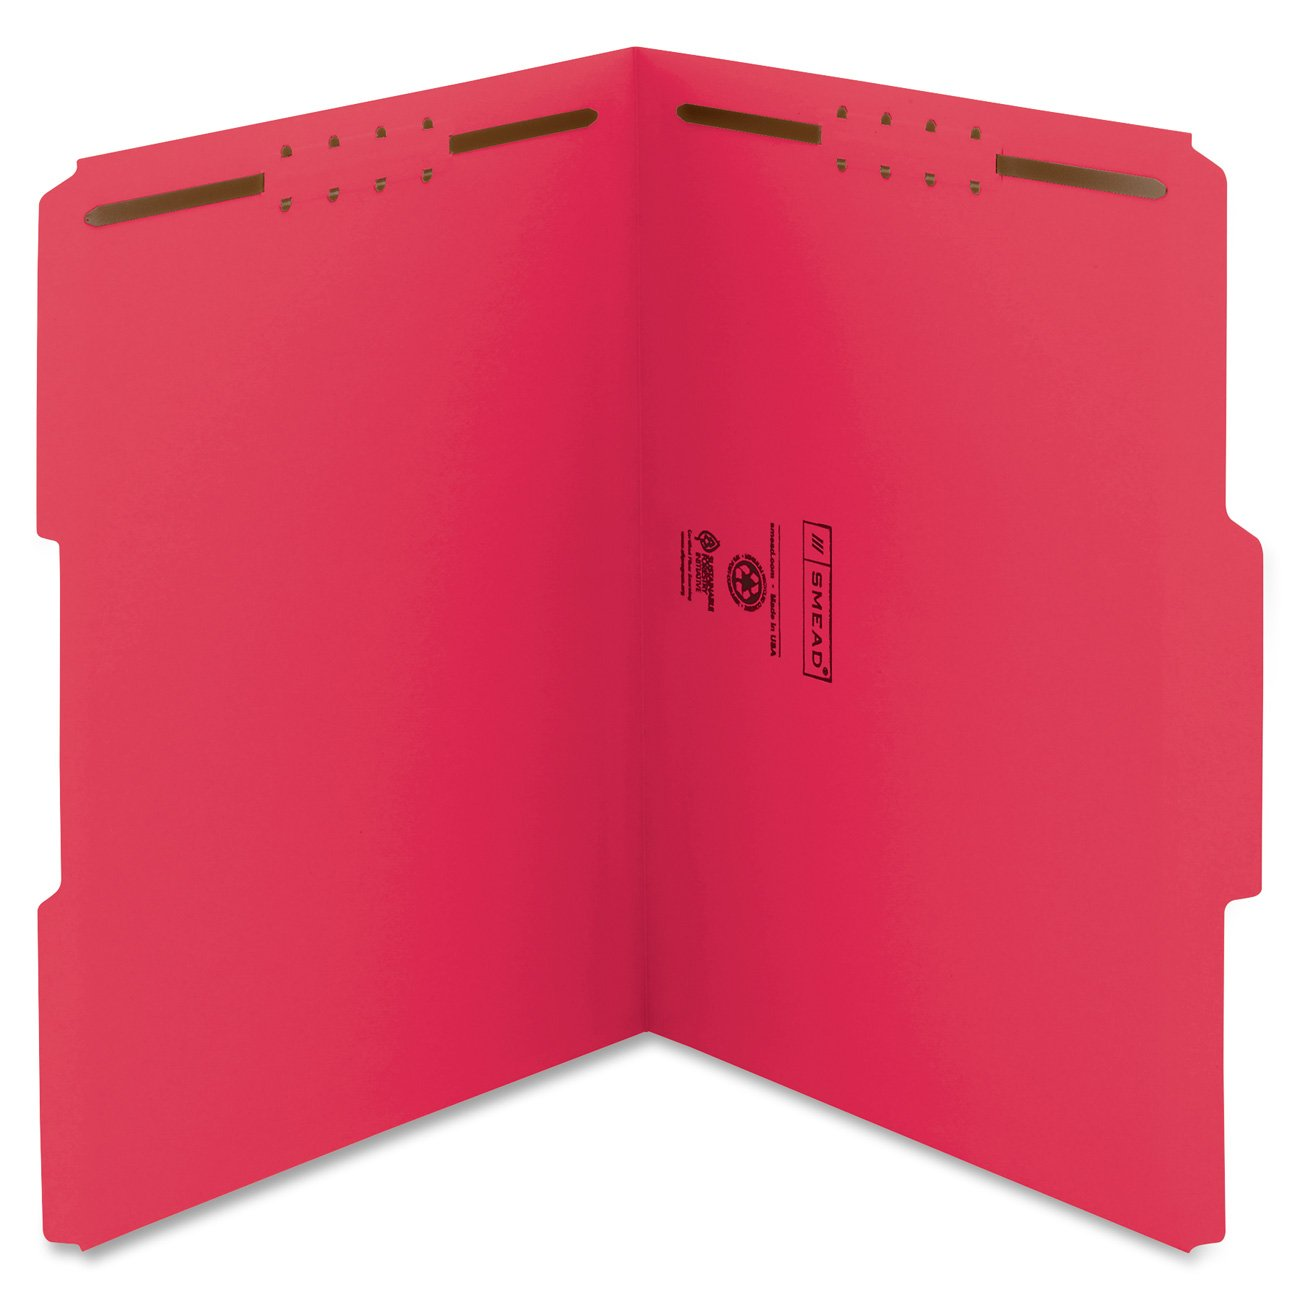 Smead Fastener File Folders, Letter Size, 1/3 Cut Reinforced Tab, Two Fasteners in Positions #1 and #3, Red 50 Per Box (12740)